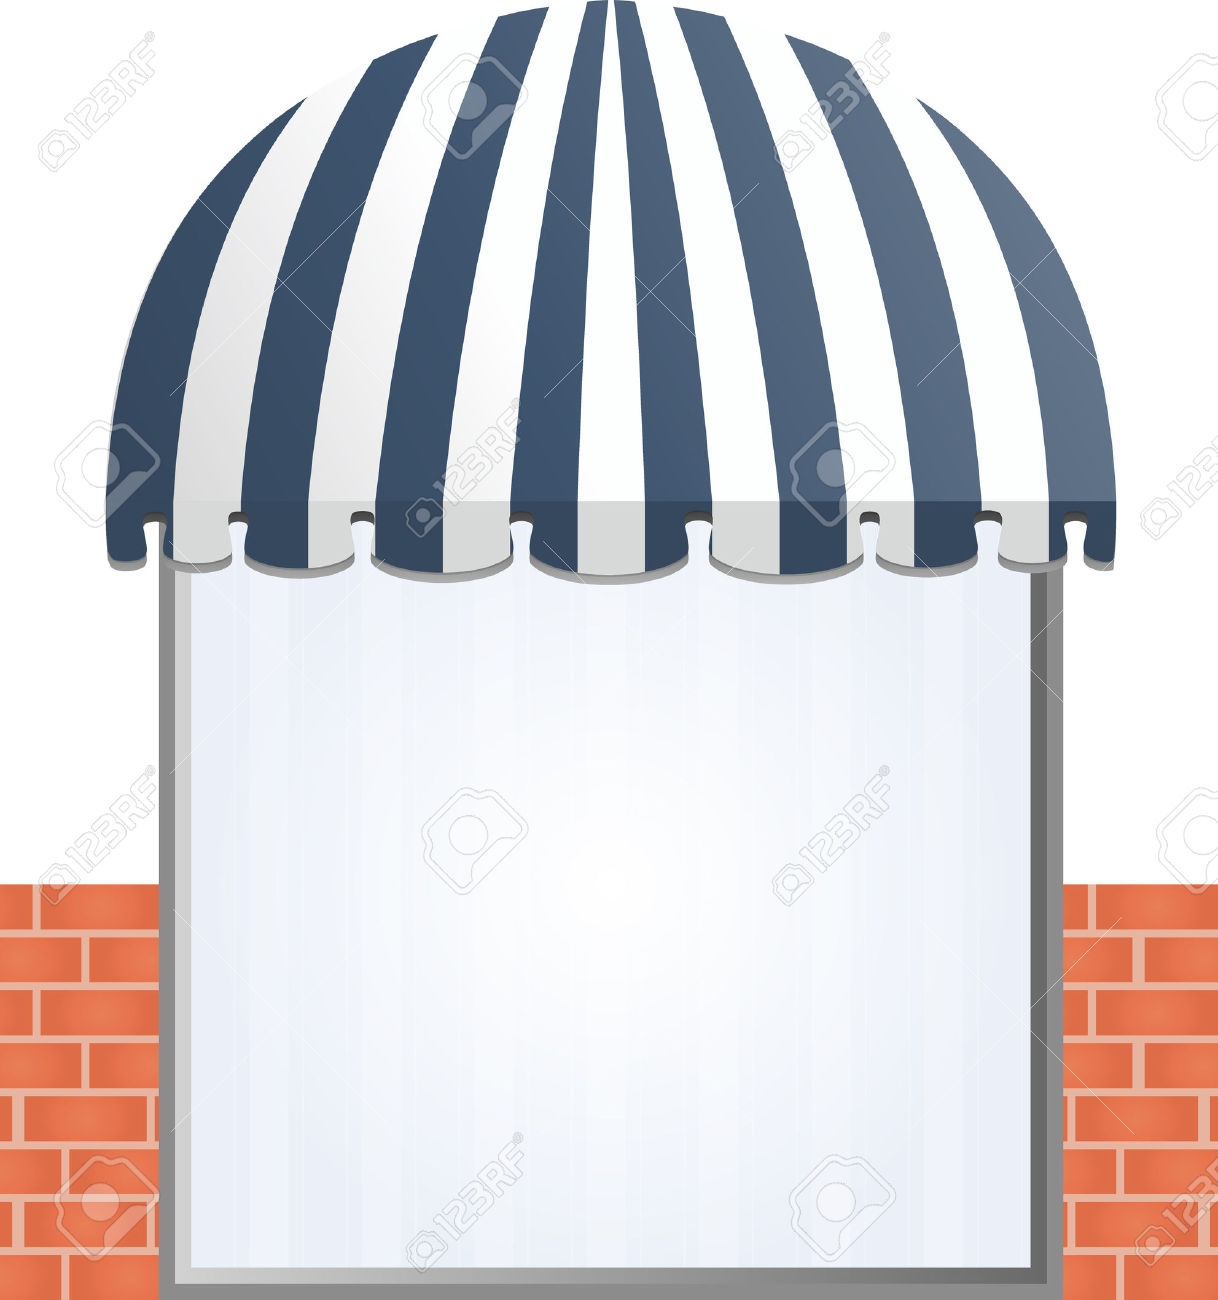 Storefront Awning In Blue Royalty Free Cliparts, Vectors, And.